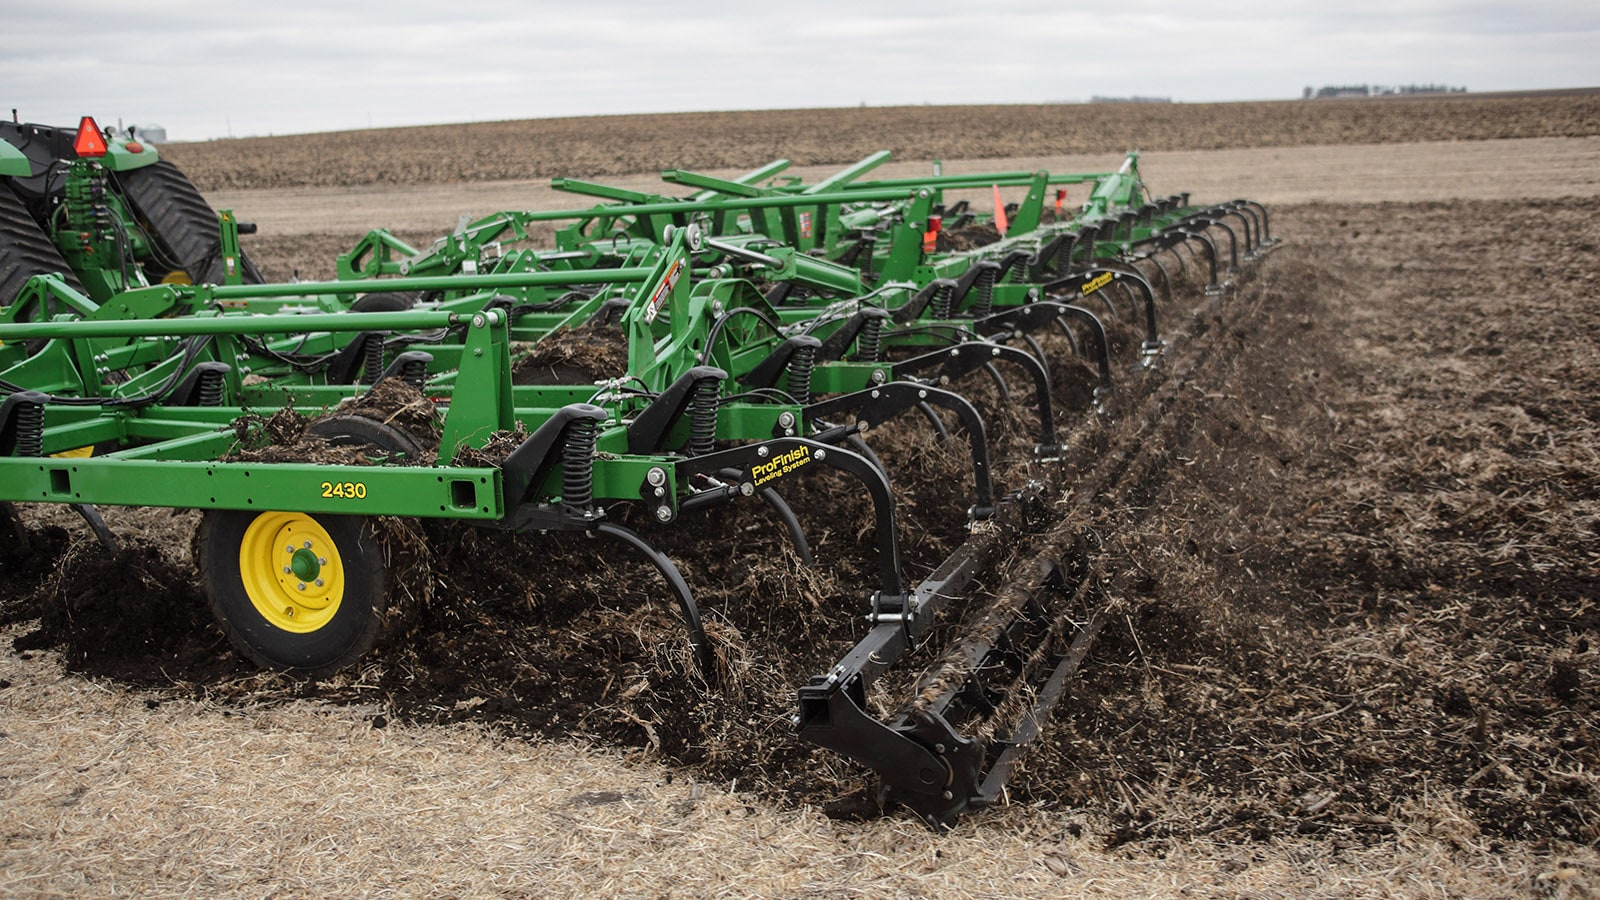 A 2430 Chisel Plow in the field